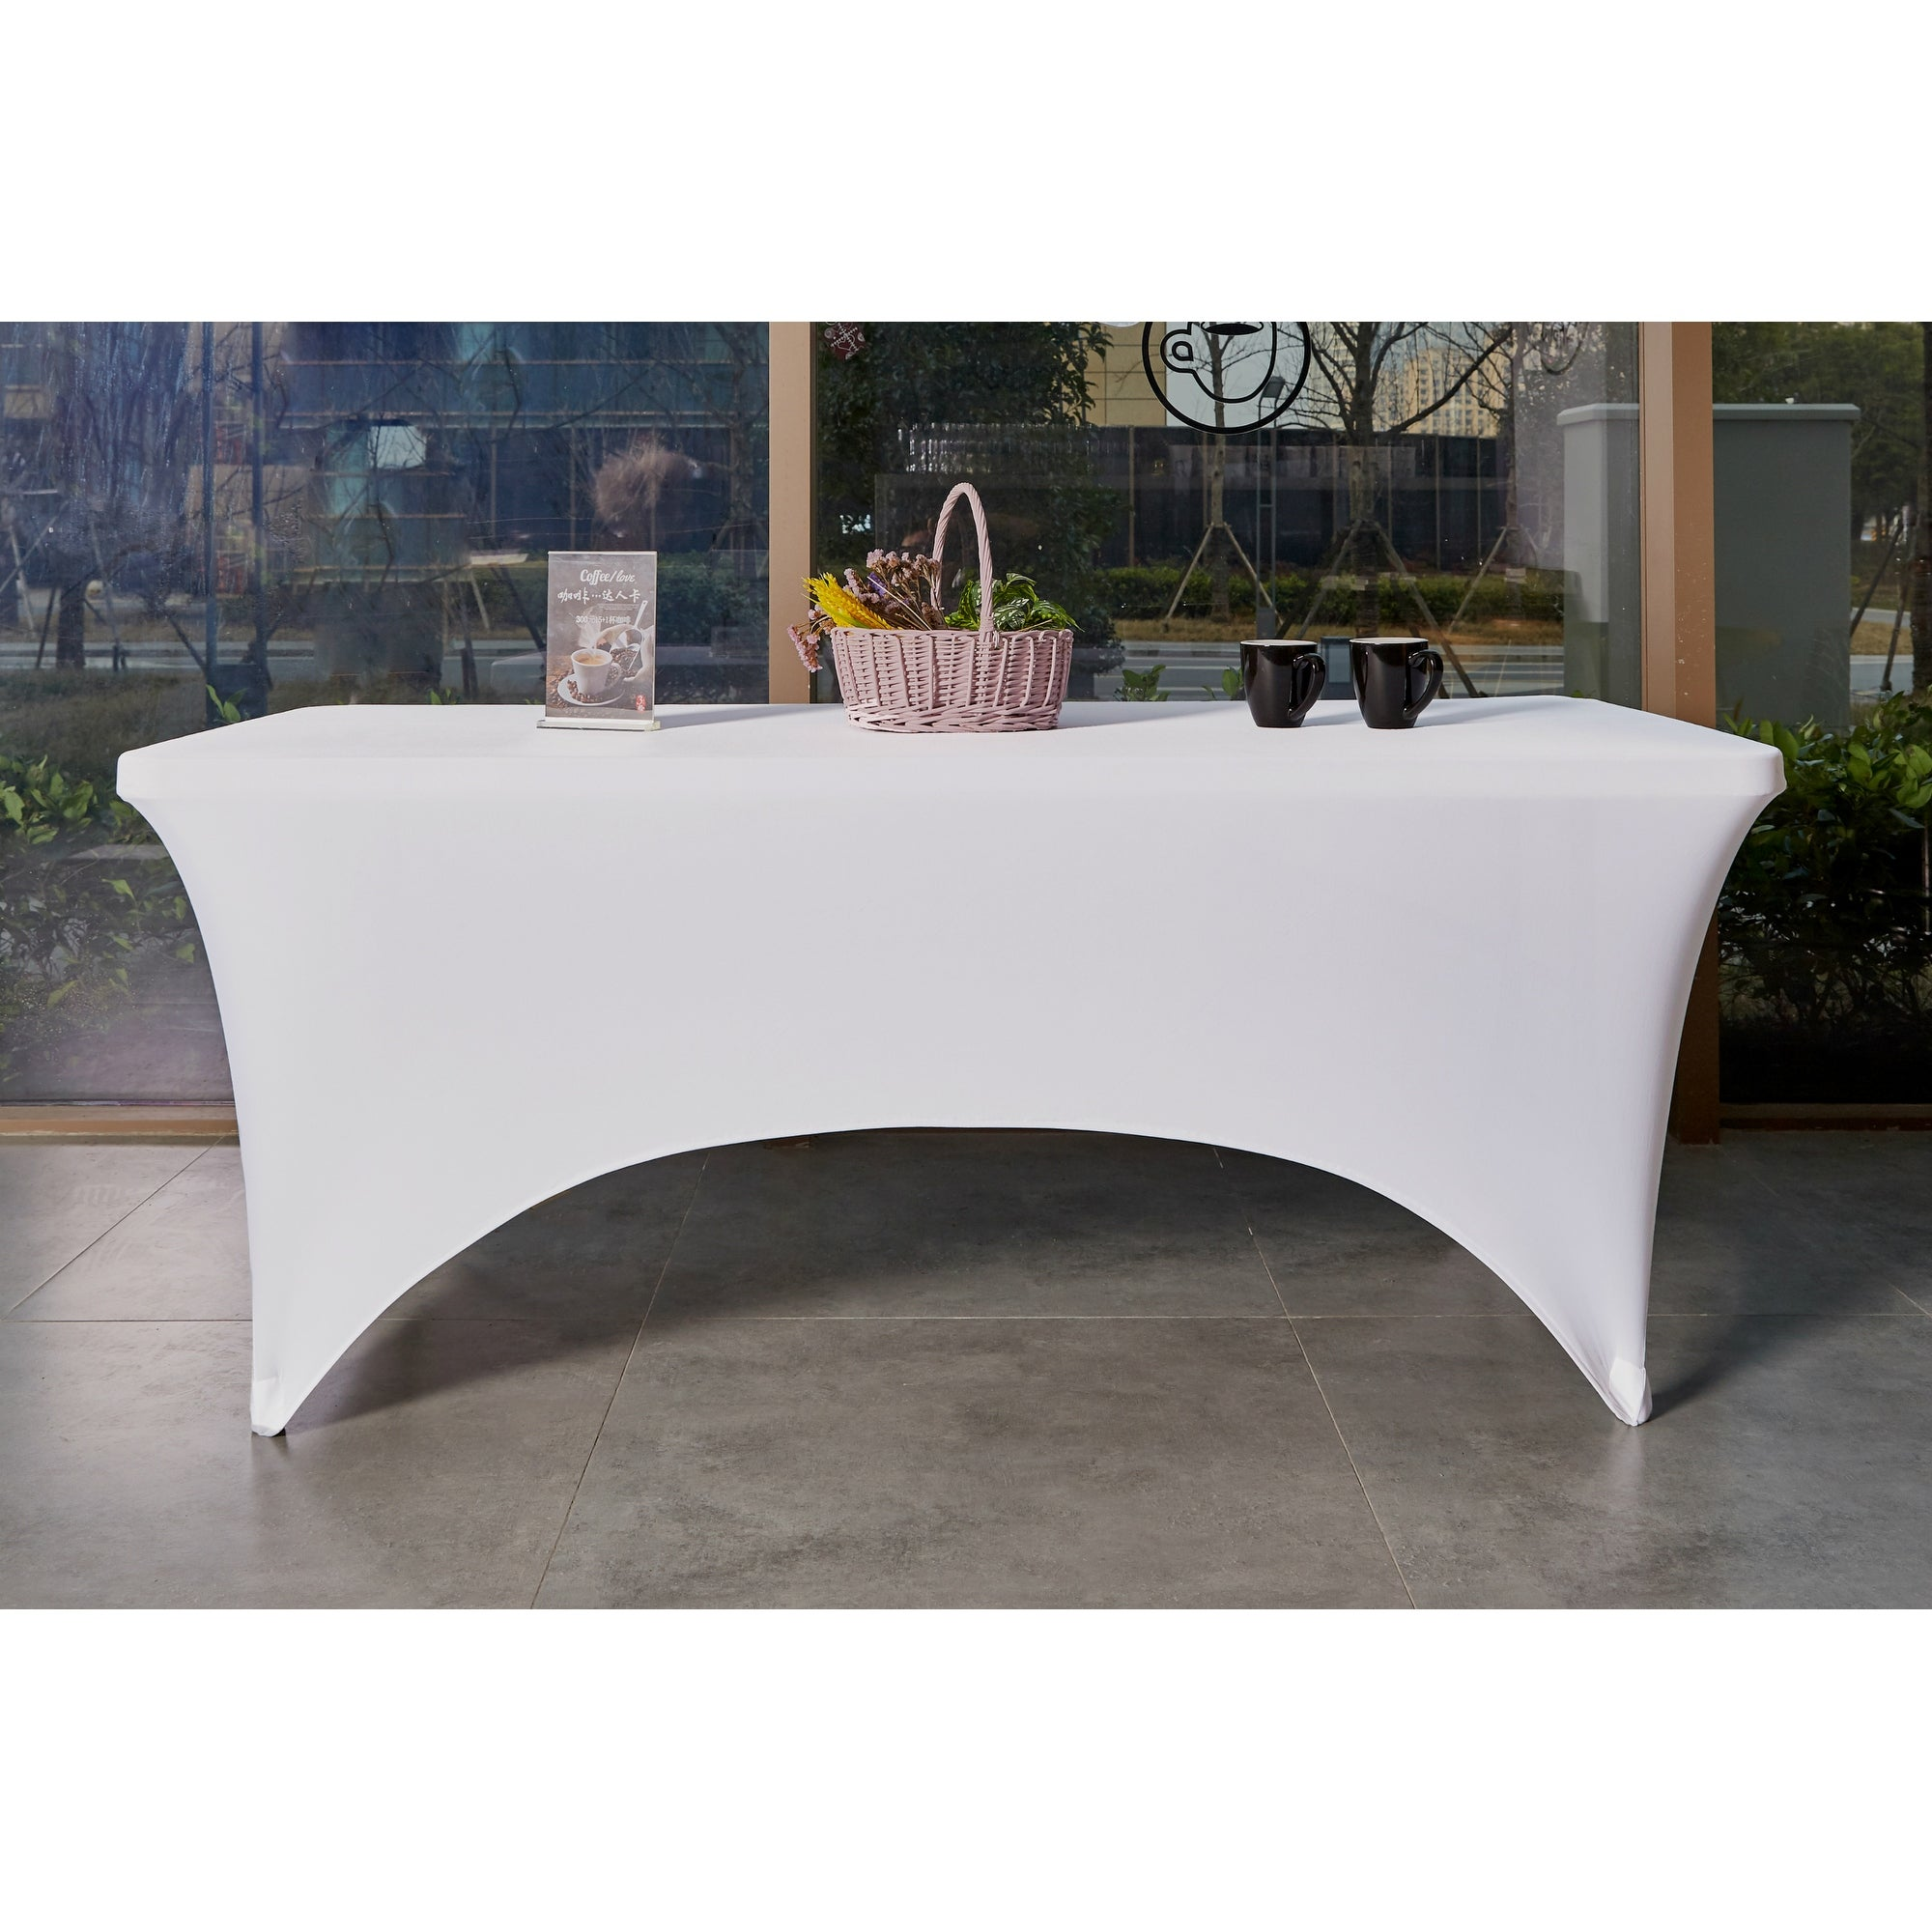 Kitchen Stretchable White Tablecloth Stretch Fitted Table Covers 6 Feet Indoor Outdoor Folding Table Rectangular On Sale Overstock 31516802